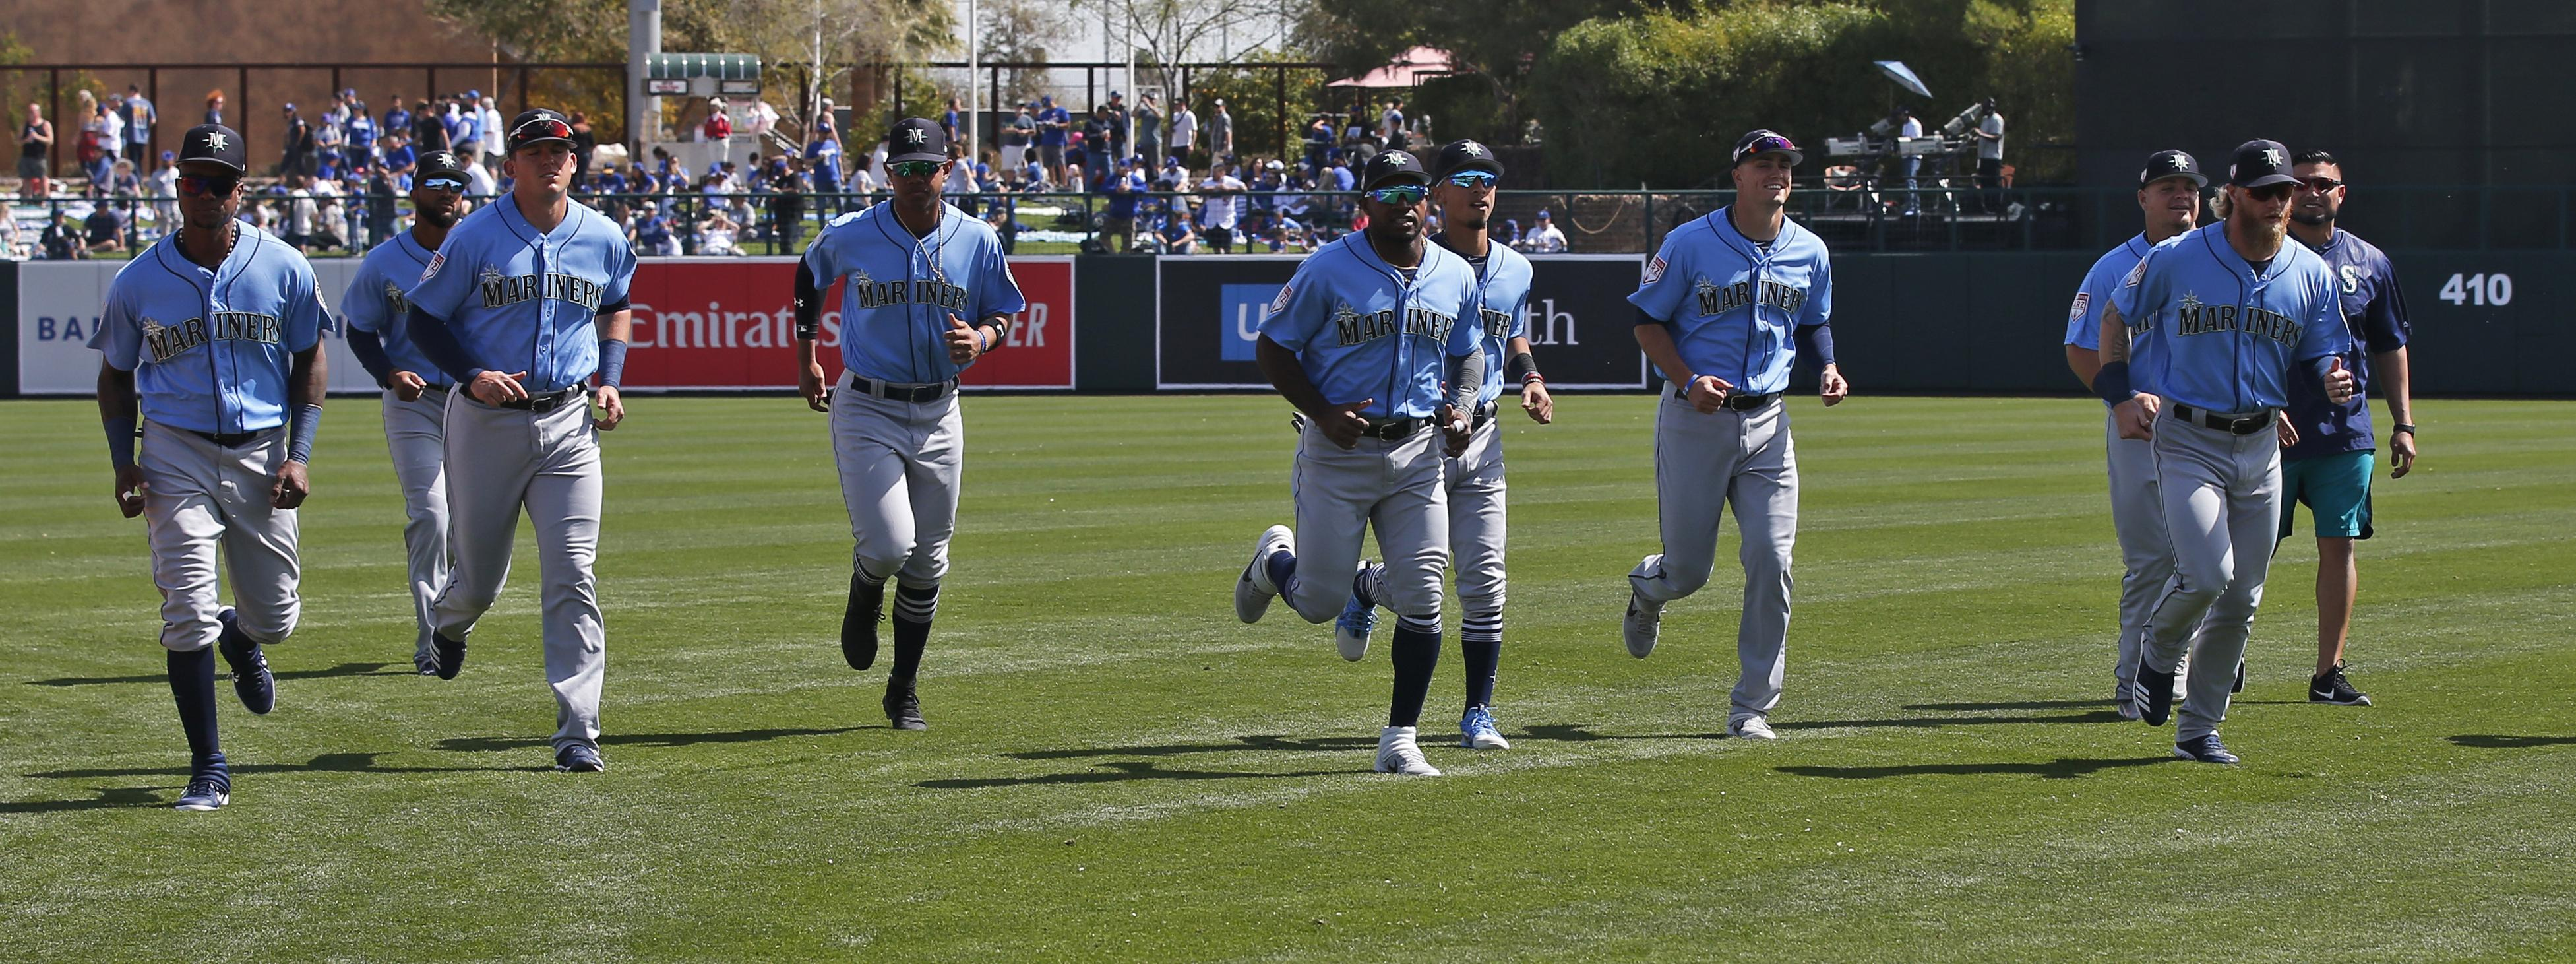 f59694347 Seattle Mariners jog in the outfield before a spring training game against  the Los Angeles Dodgers